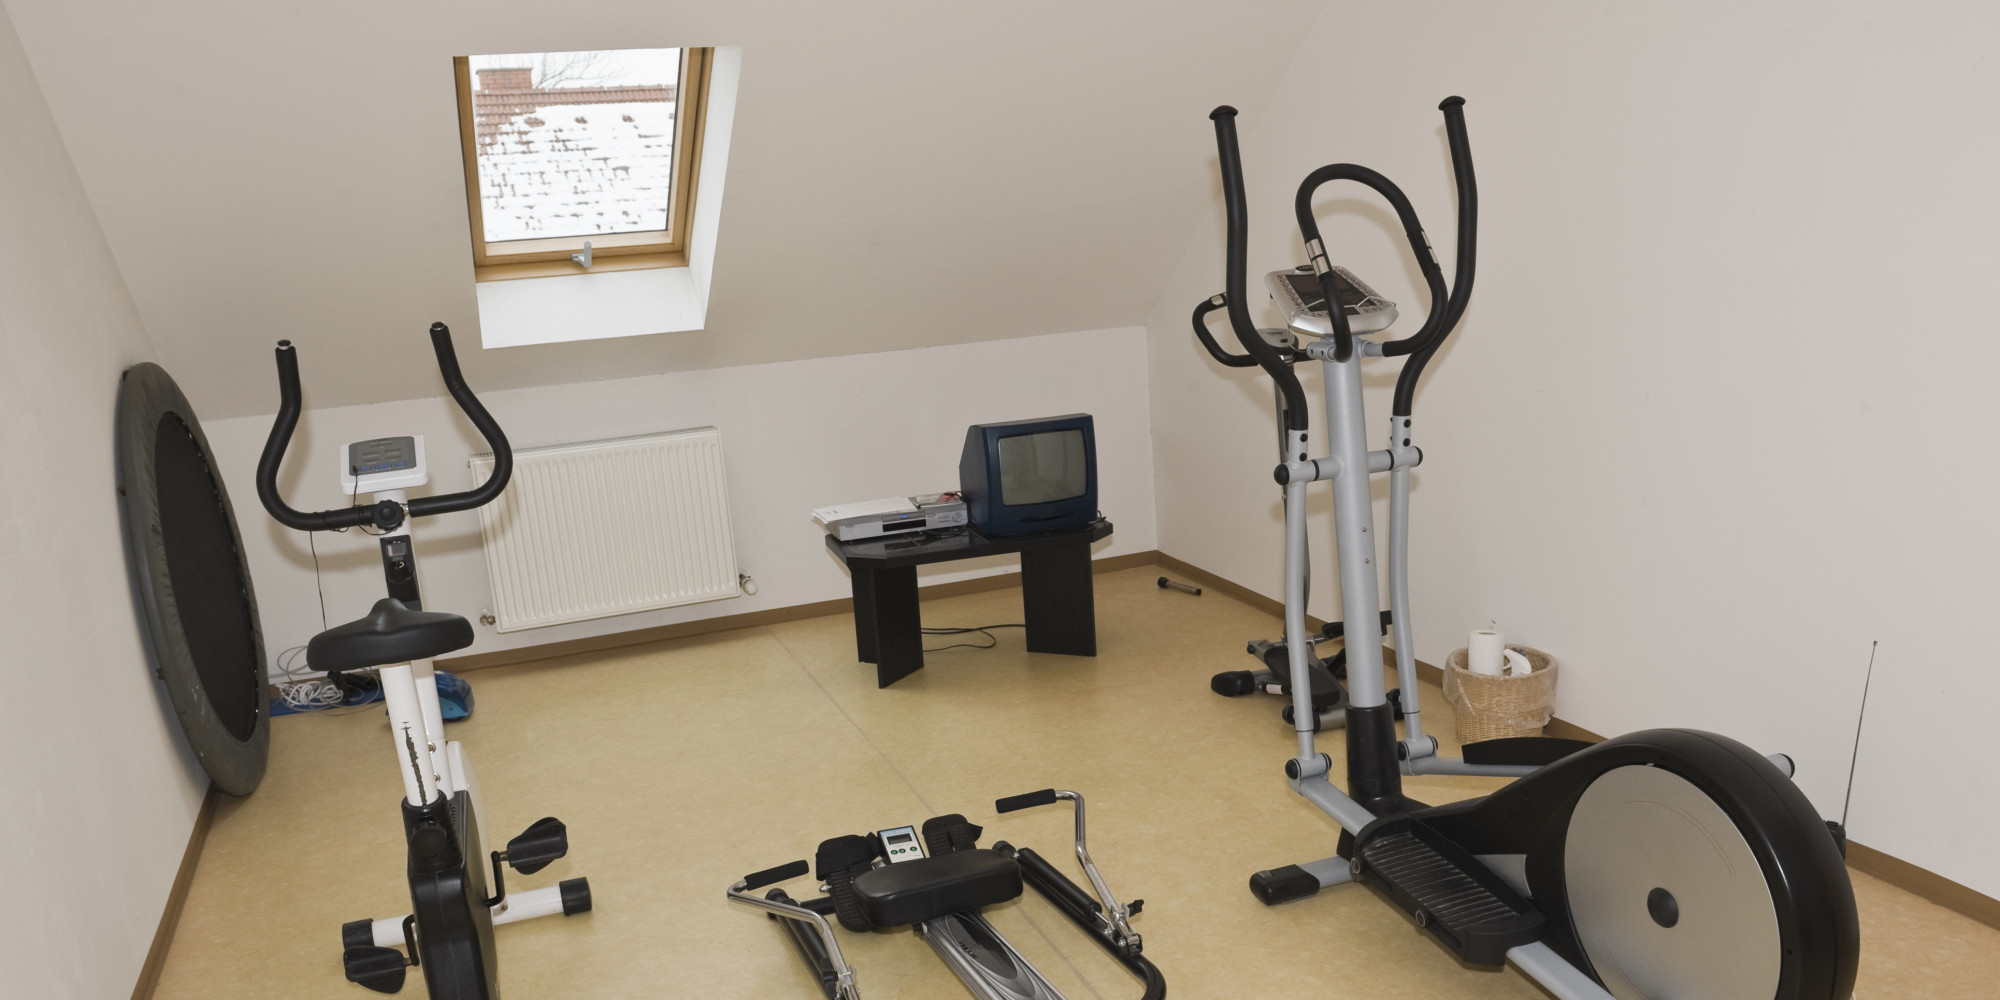 Choosing the Right Home Exercise Equipment | HuffPost